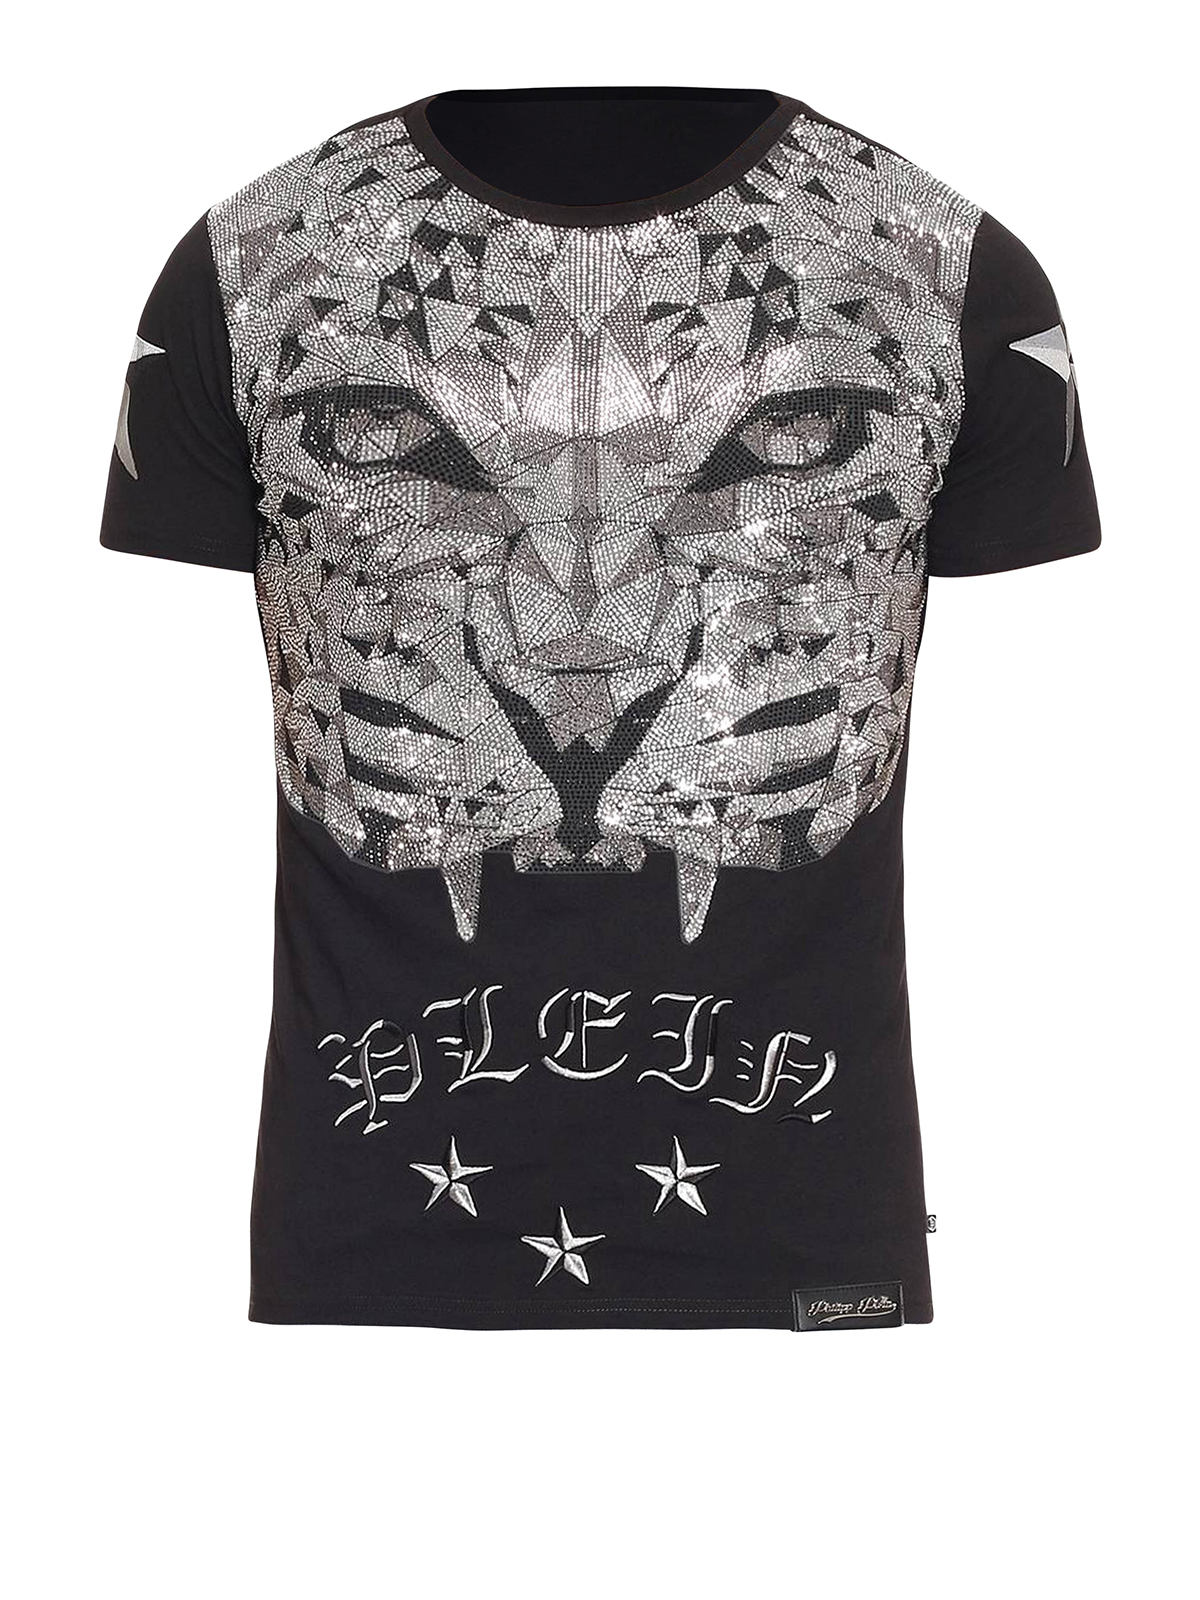 philipp plein t shirt master con stampa tigre t shirt. Black Bedroom Furniture Sets. Home Design Ideas